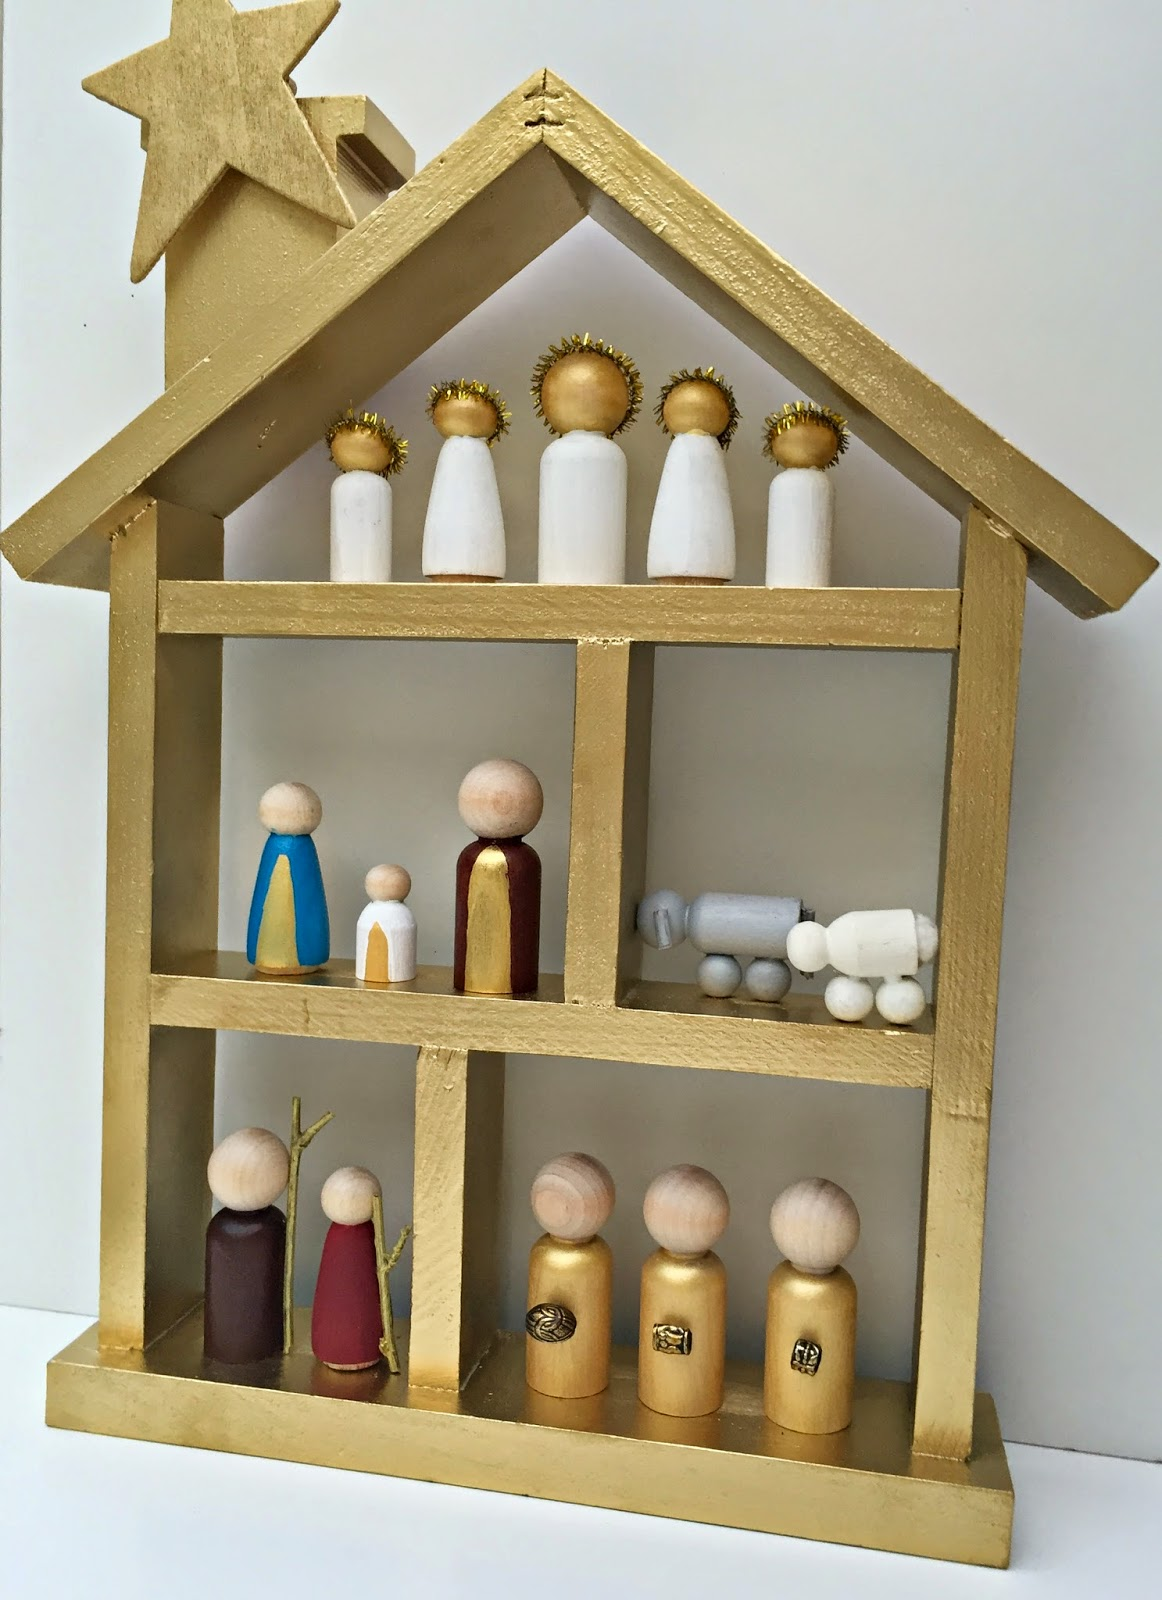 Kent heartstrings peg doll nativity set diy for Nativity crafts to make